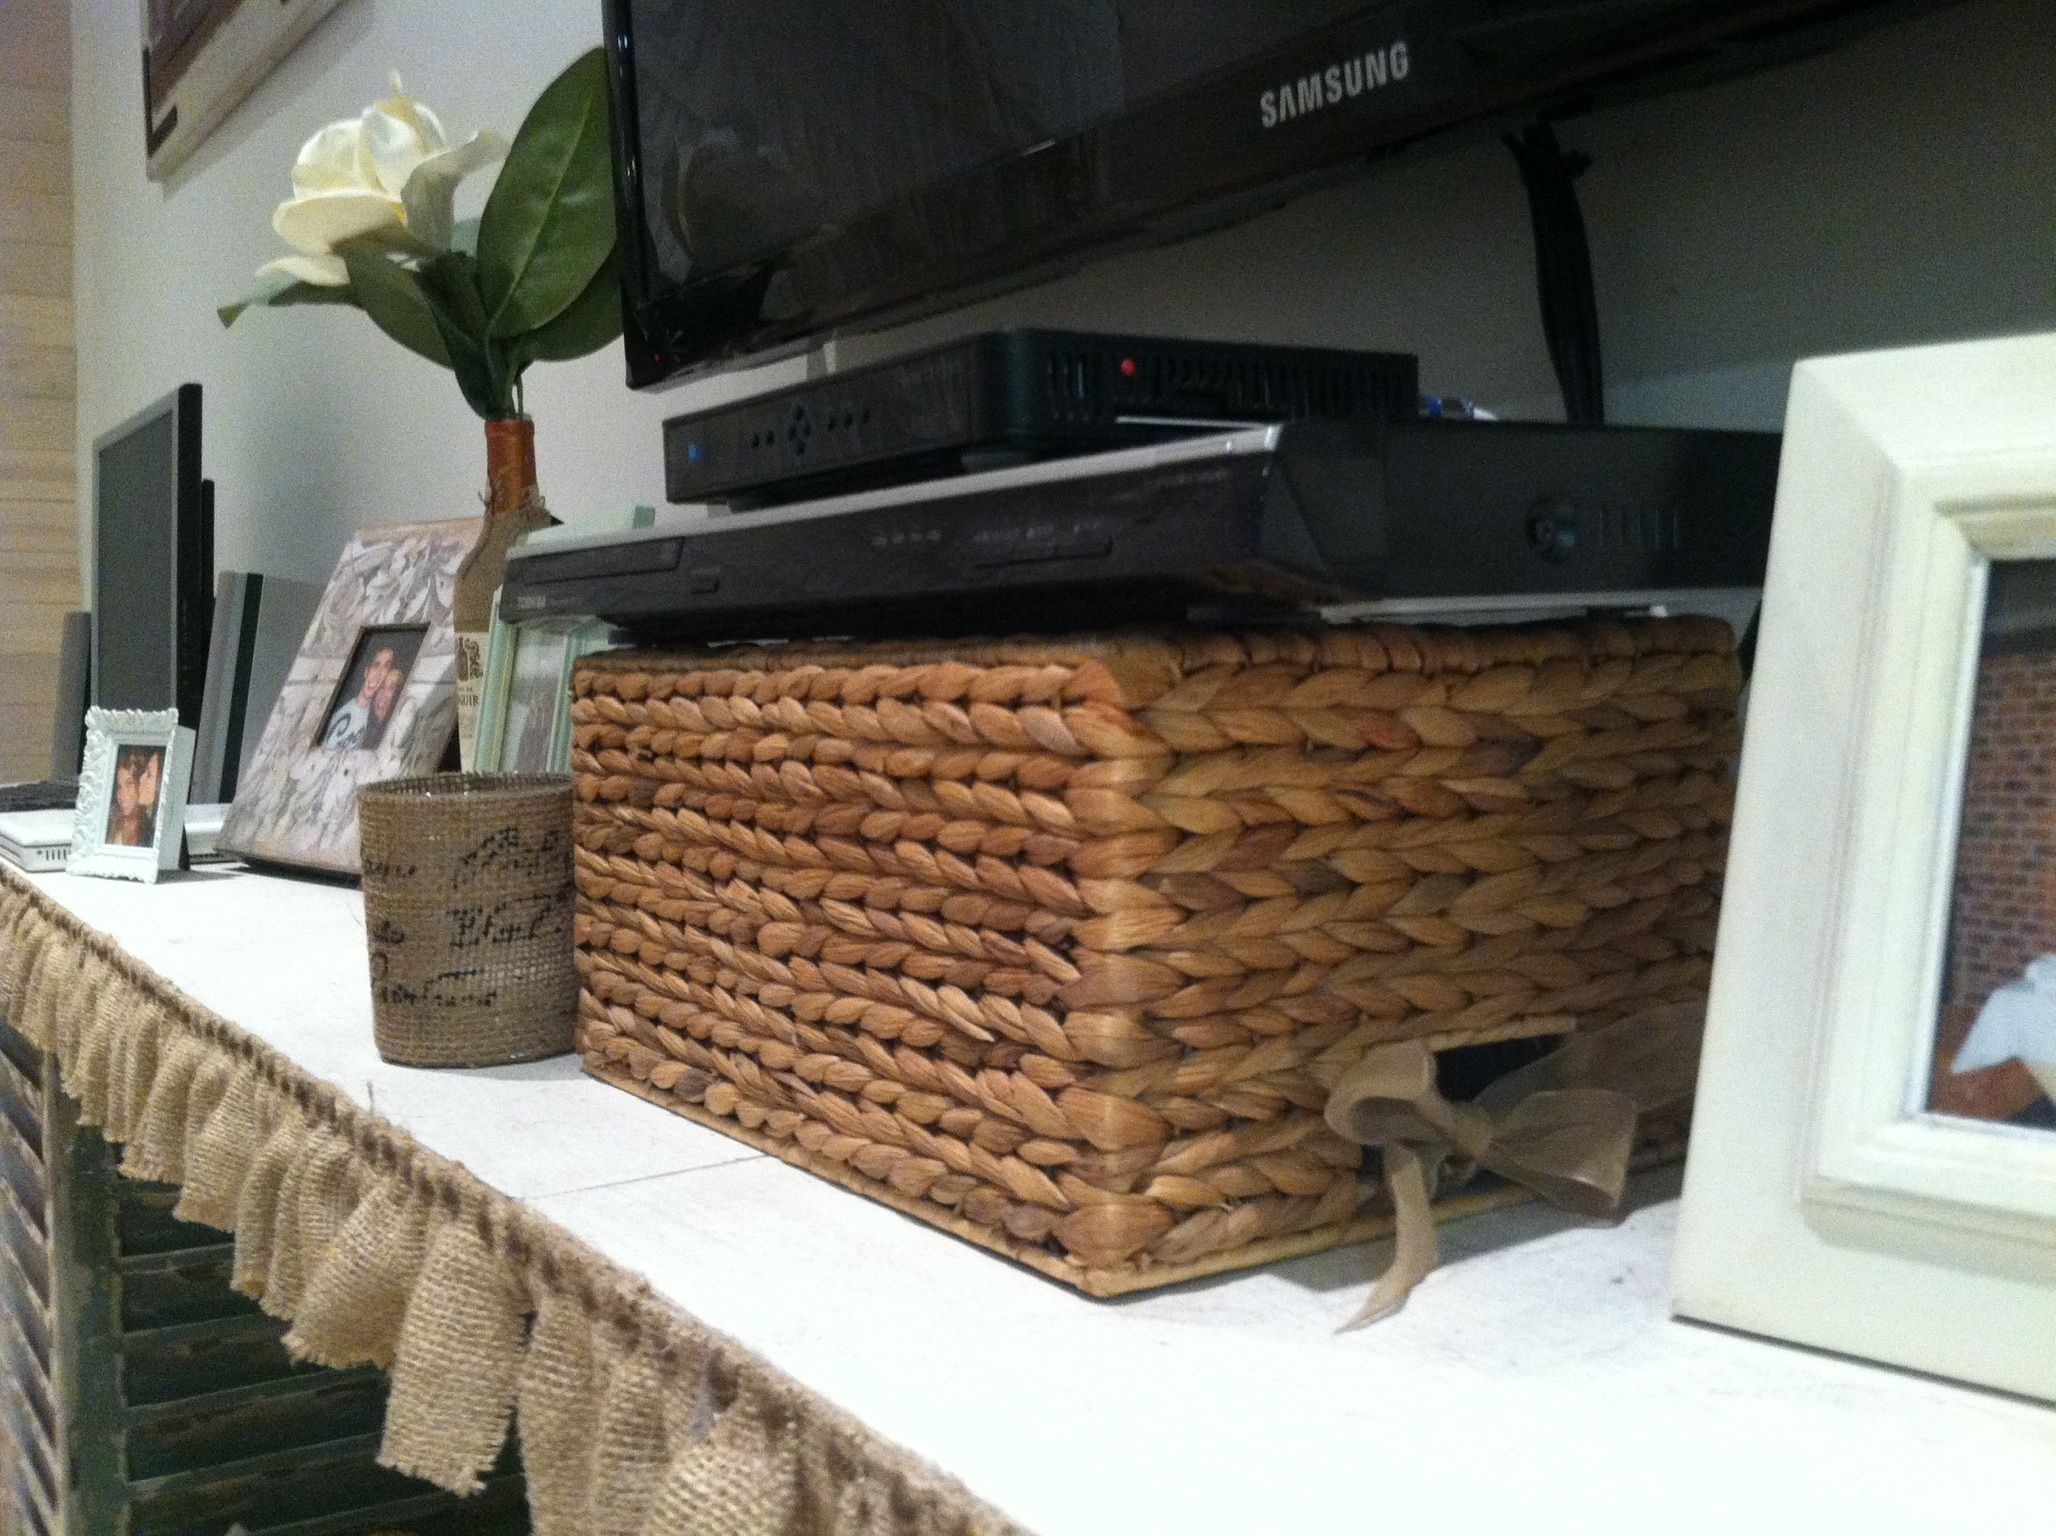 How To Hide Tv Wicker Basket With The Back Cut Out To Hide Wires Home